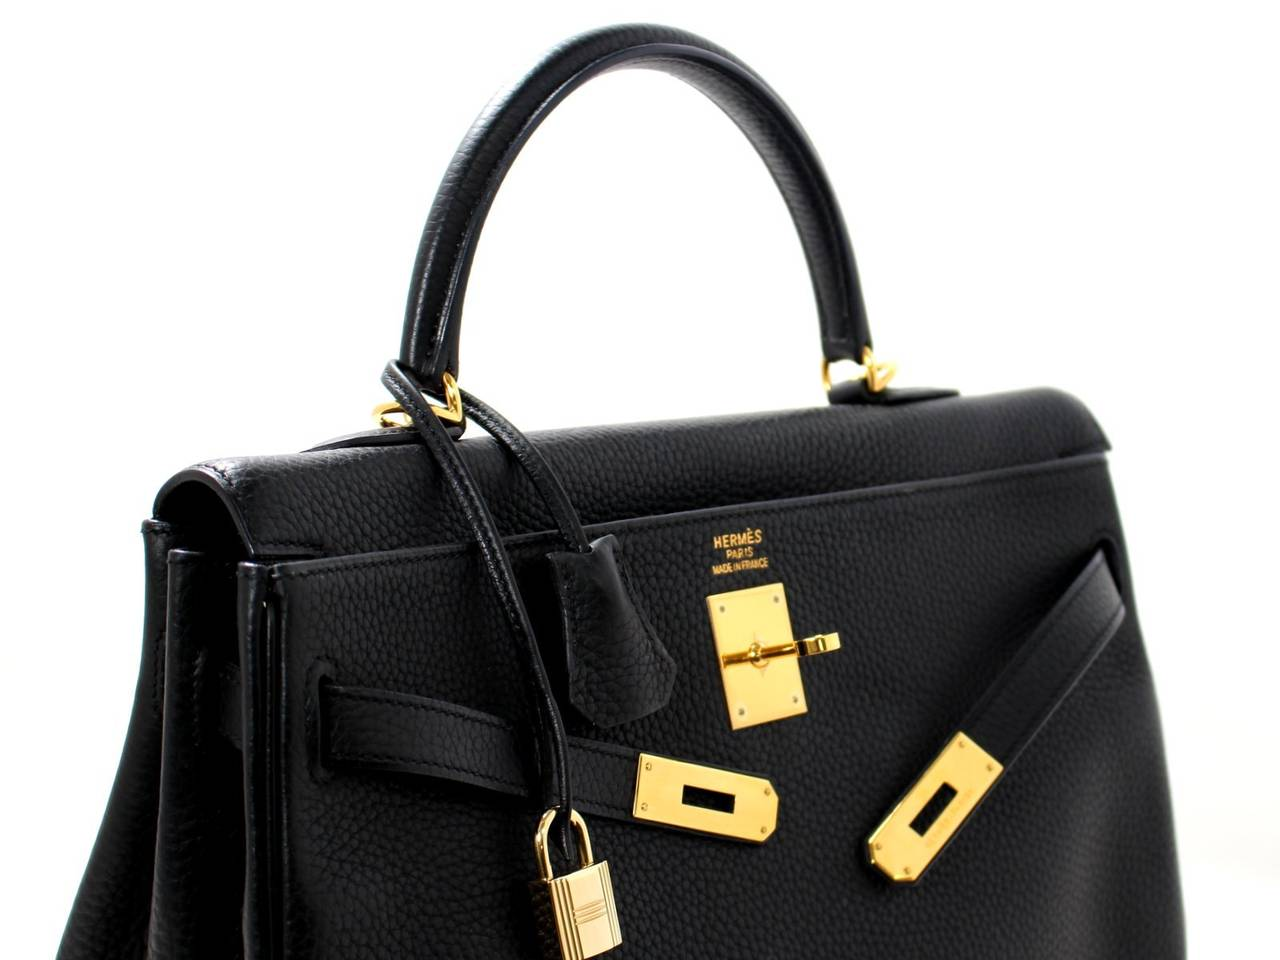 HERMES Kelly Bag- Black Clemence Leather with  Gold, 35 cm 5